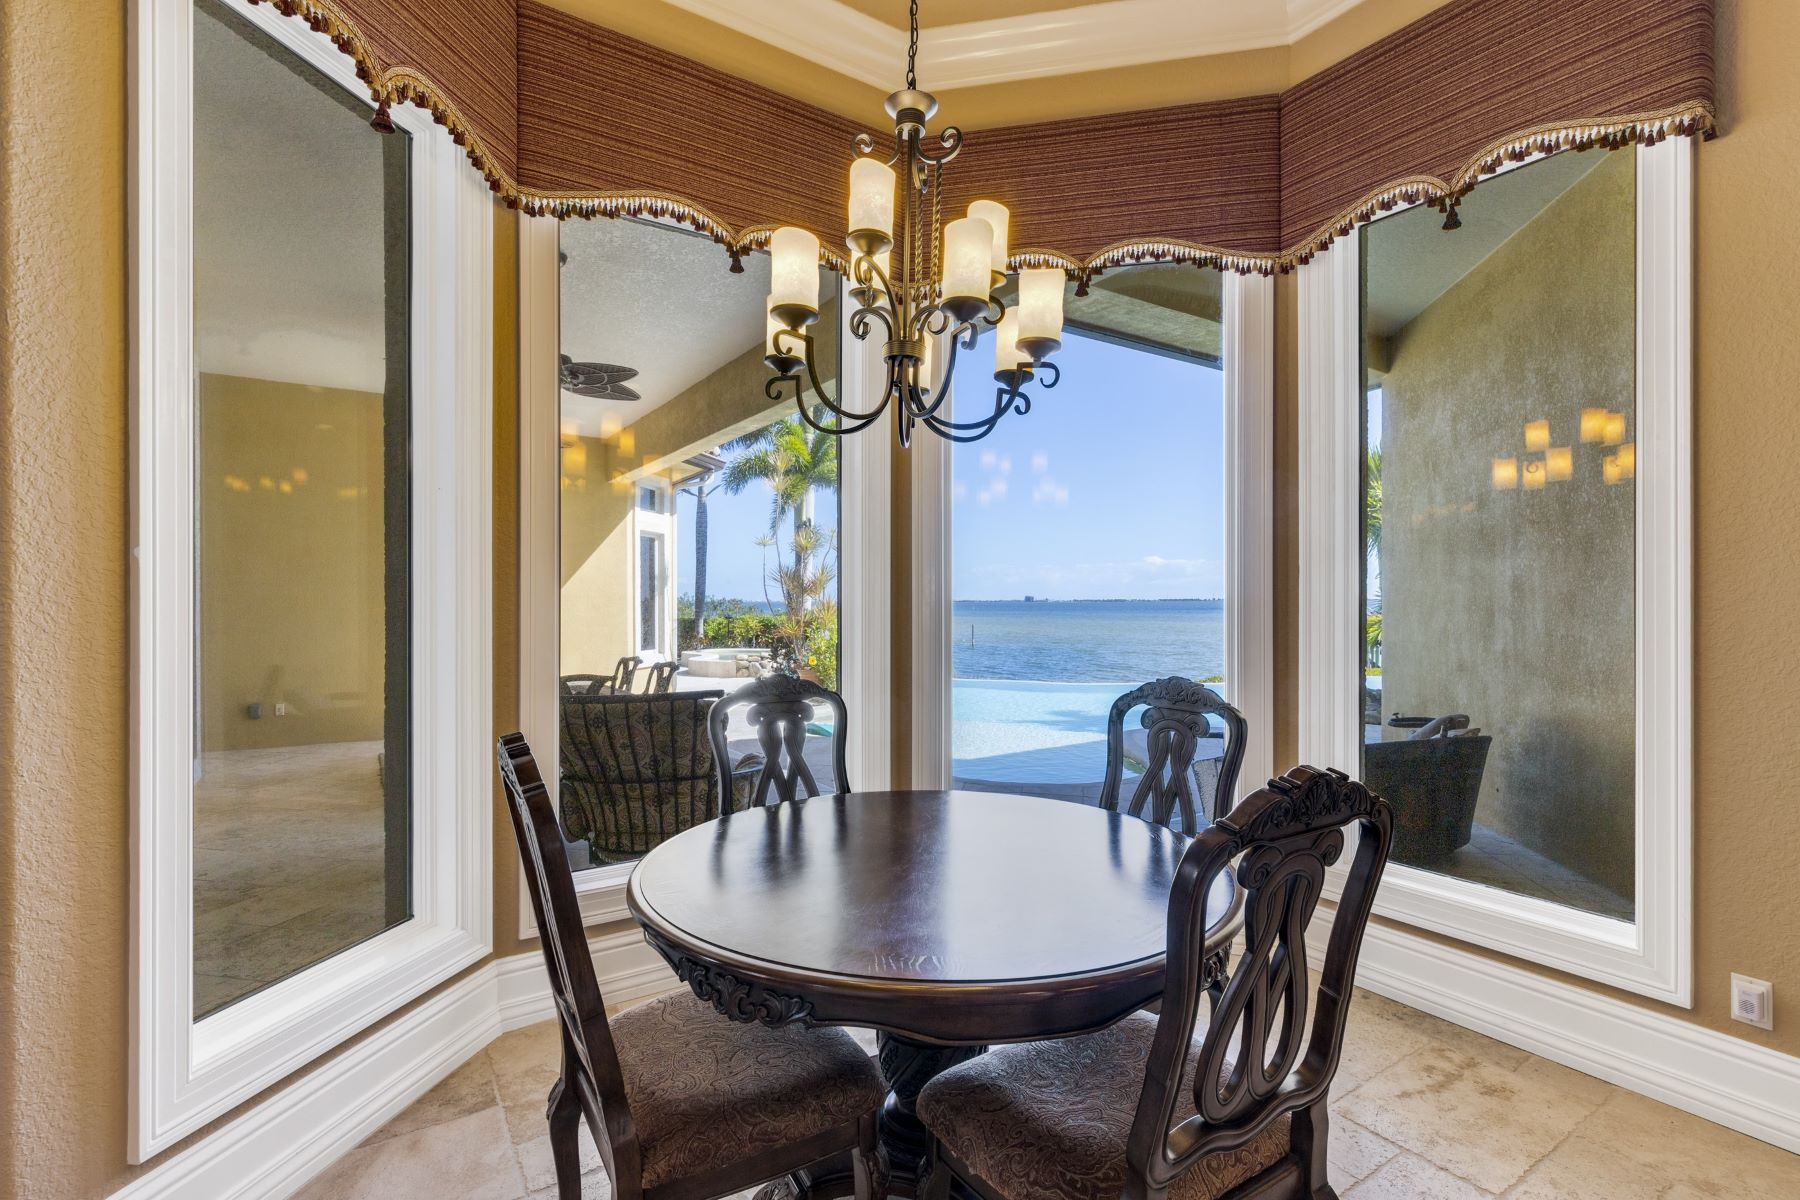 Additional photo for property listing at 8140 S Tropical Trail Merritt Island, Florida 32952 Verenigde Staten